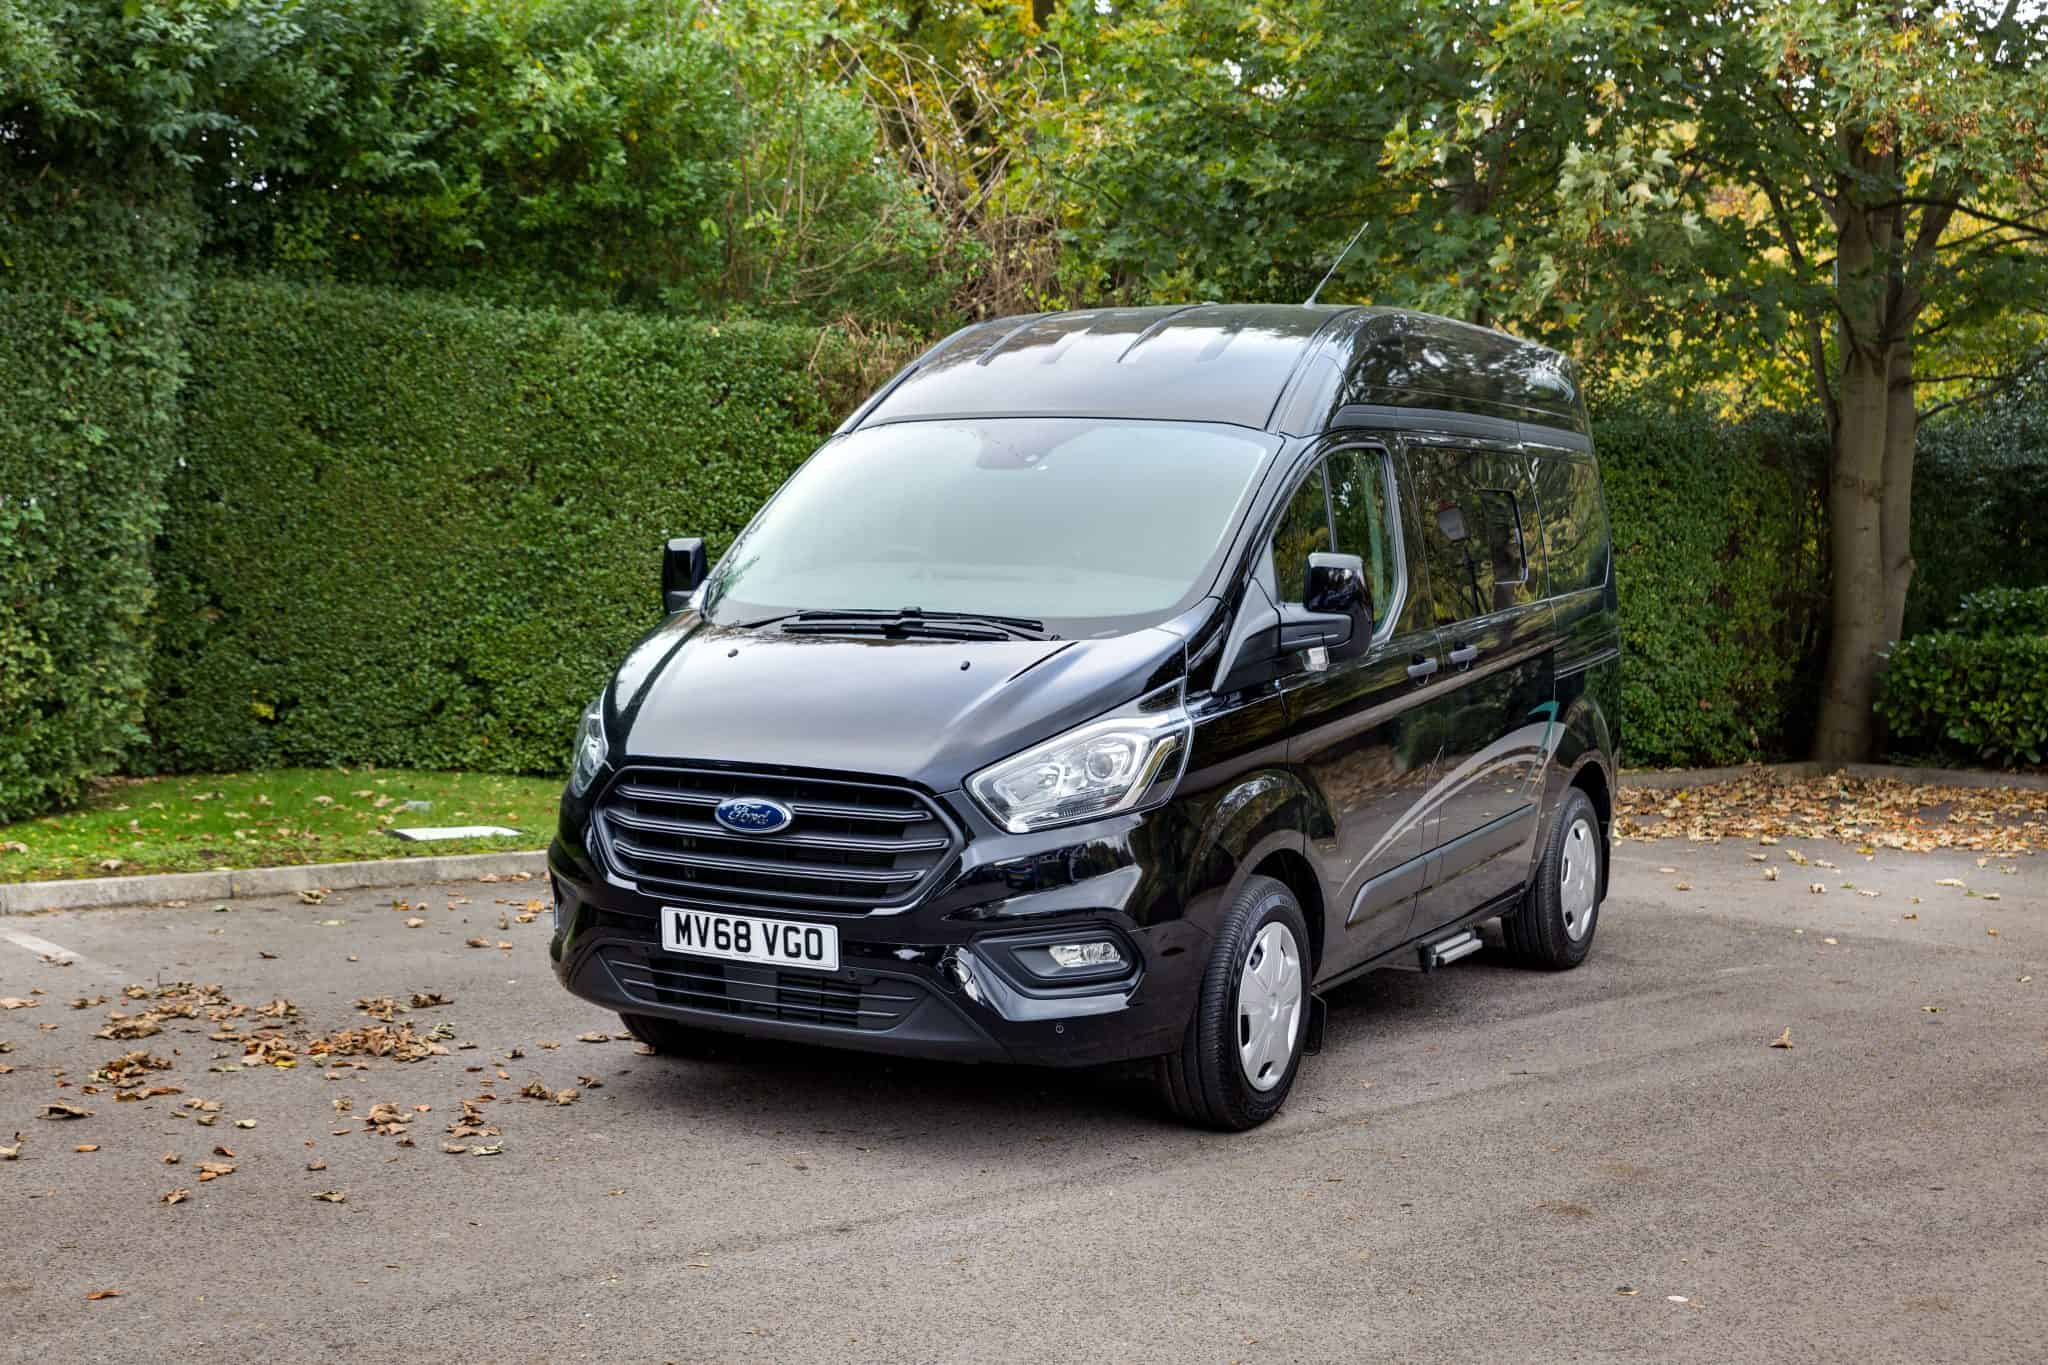 Ford Occasion Campervans for Sale, Ford Occasion Campervans for Sale, Leisuredrive